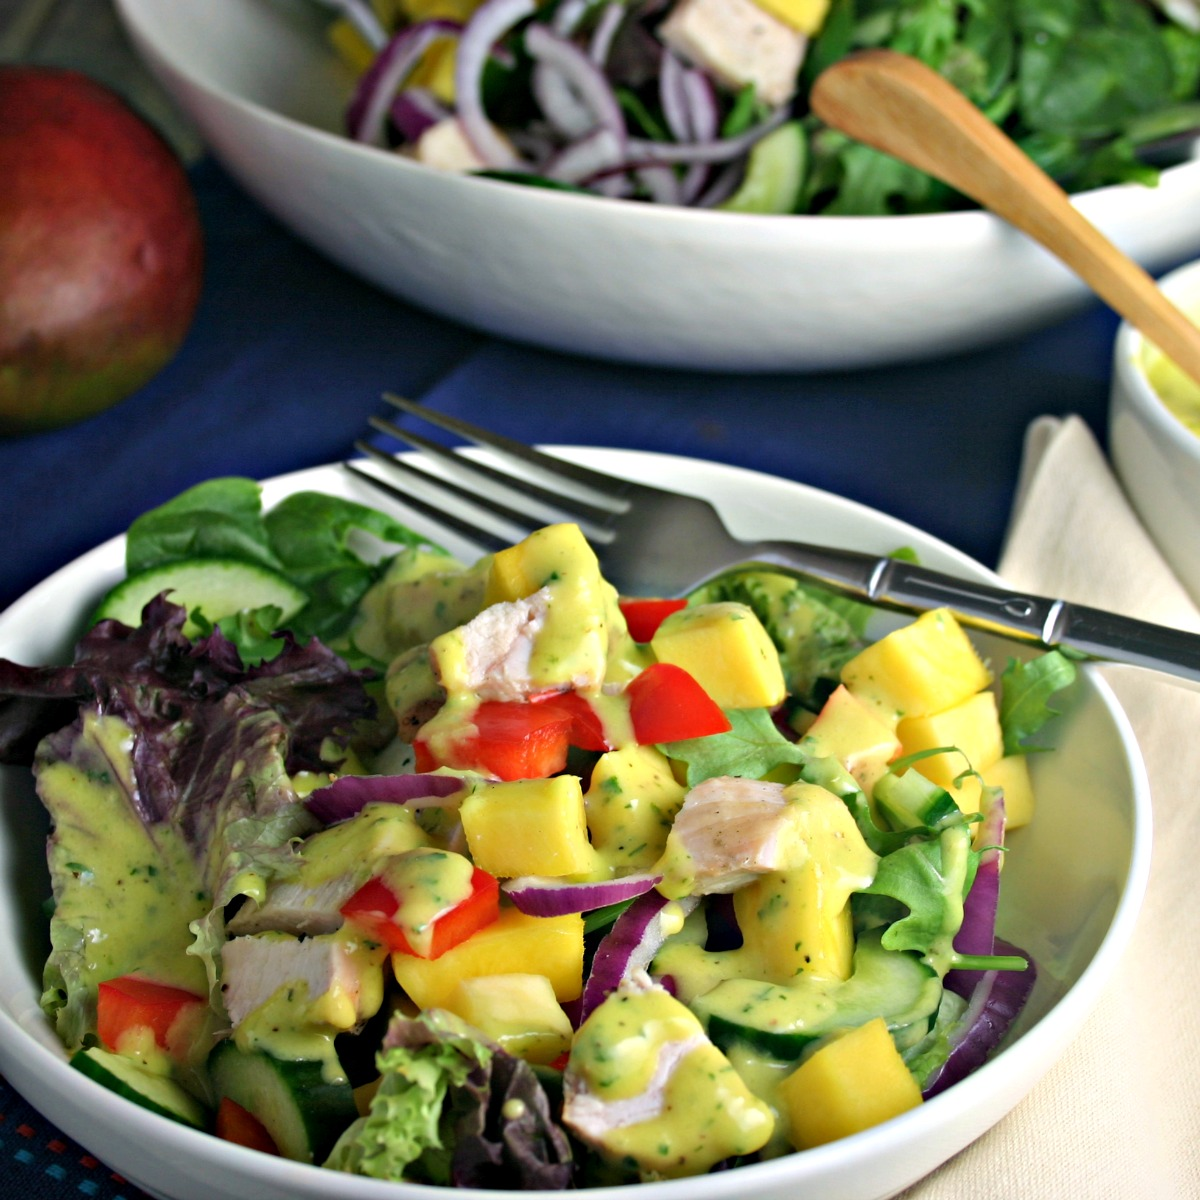 Mango Vinaigrette makes this chopped chicken dinner salad extra special!